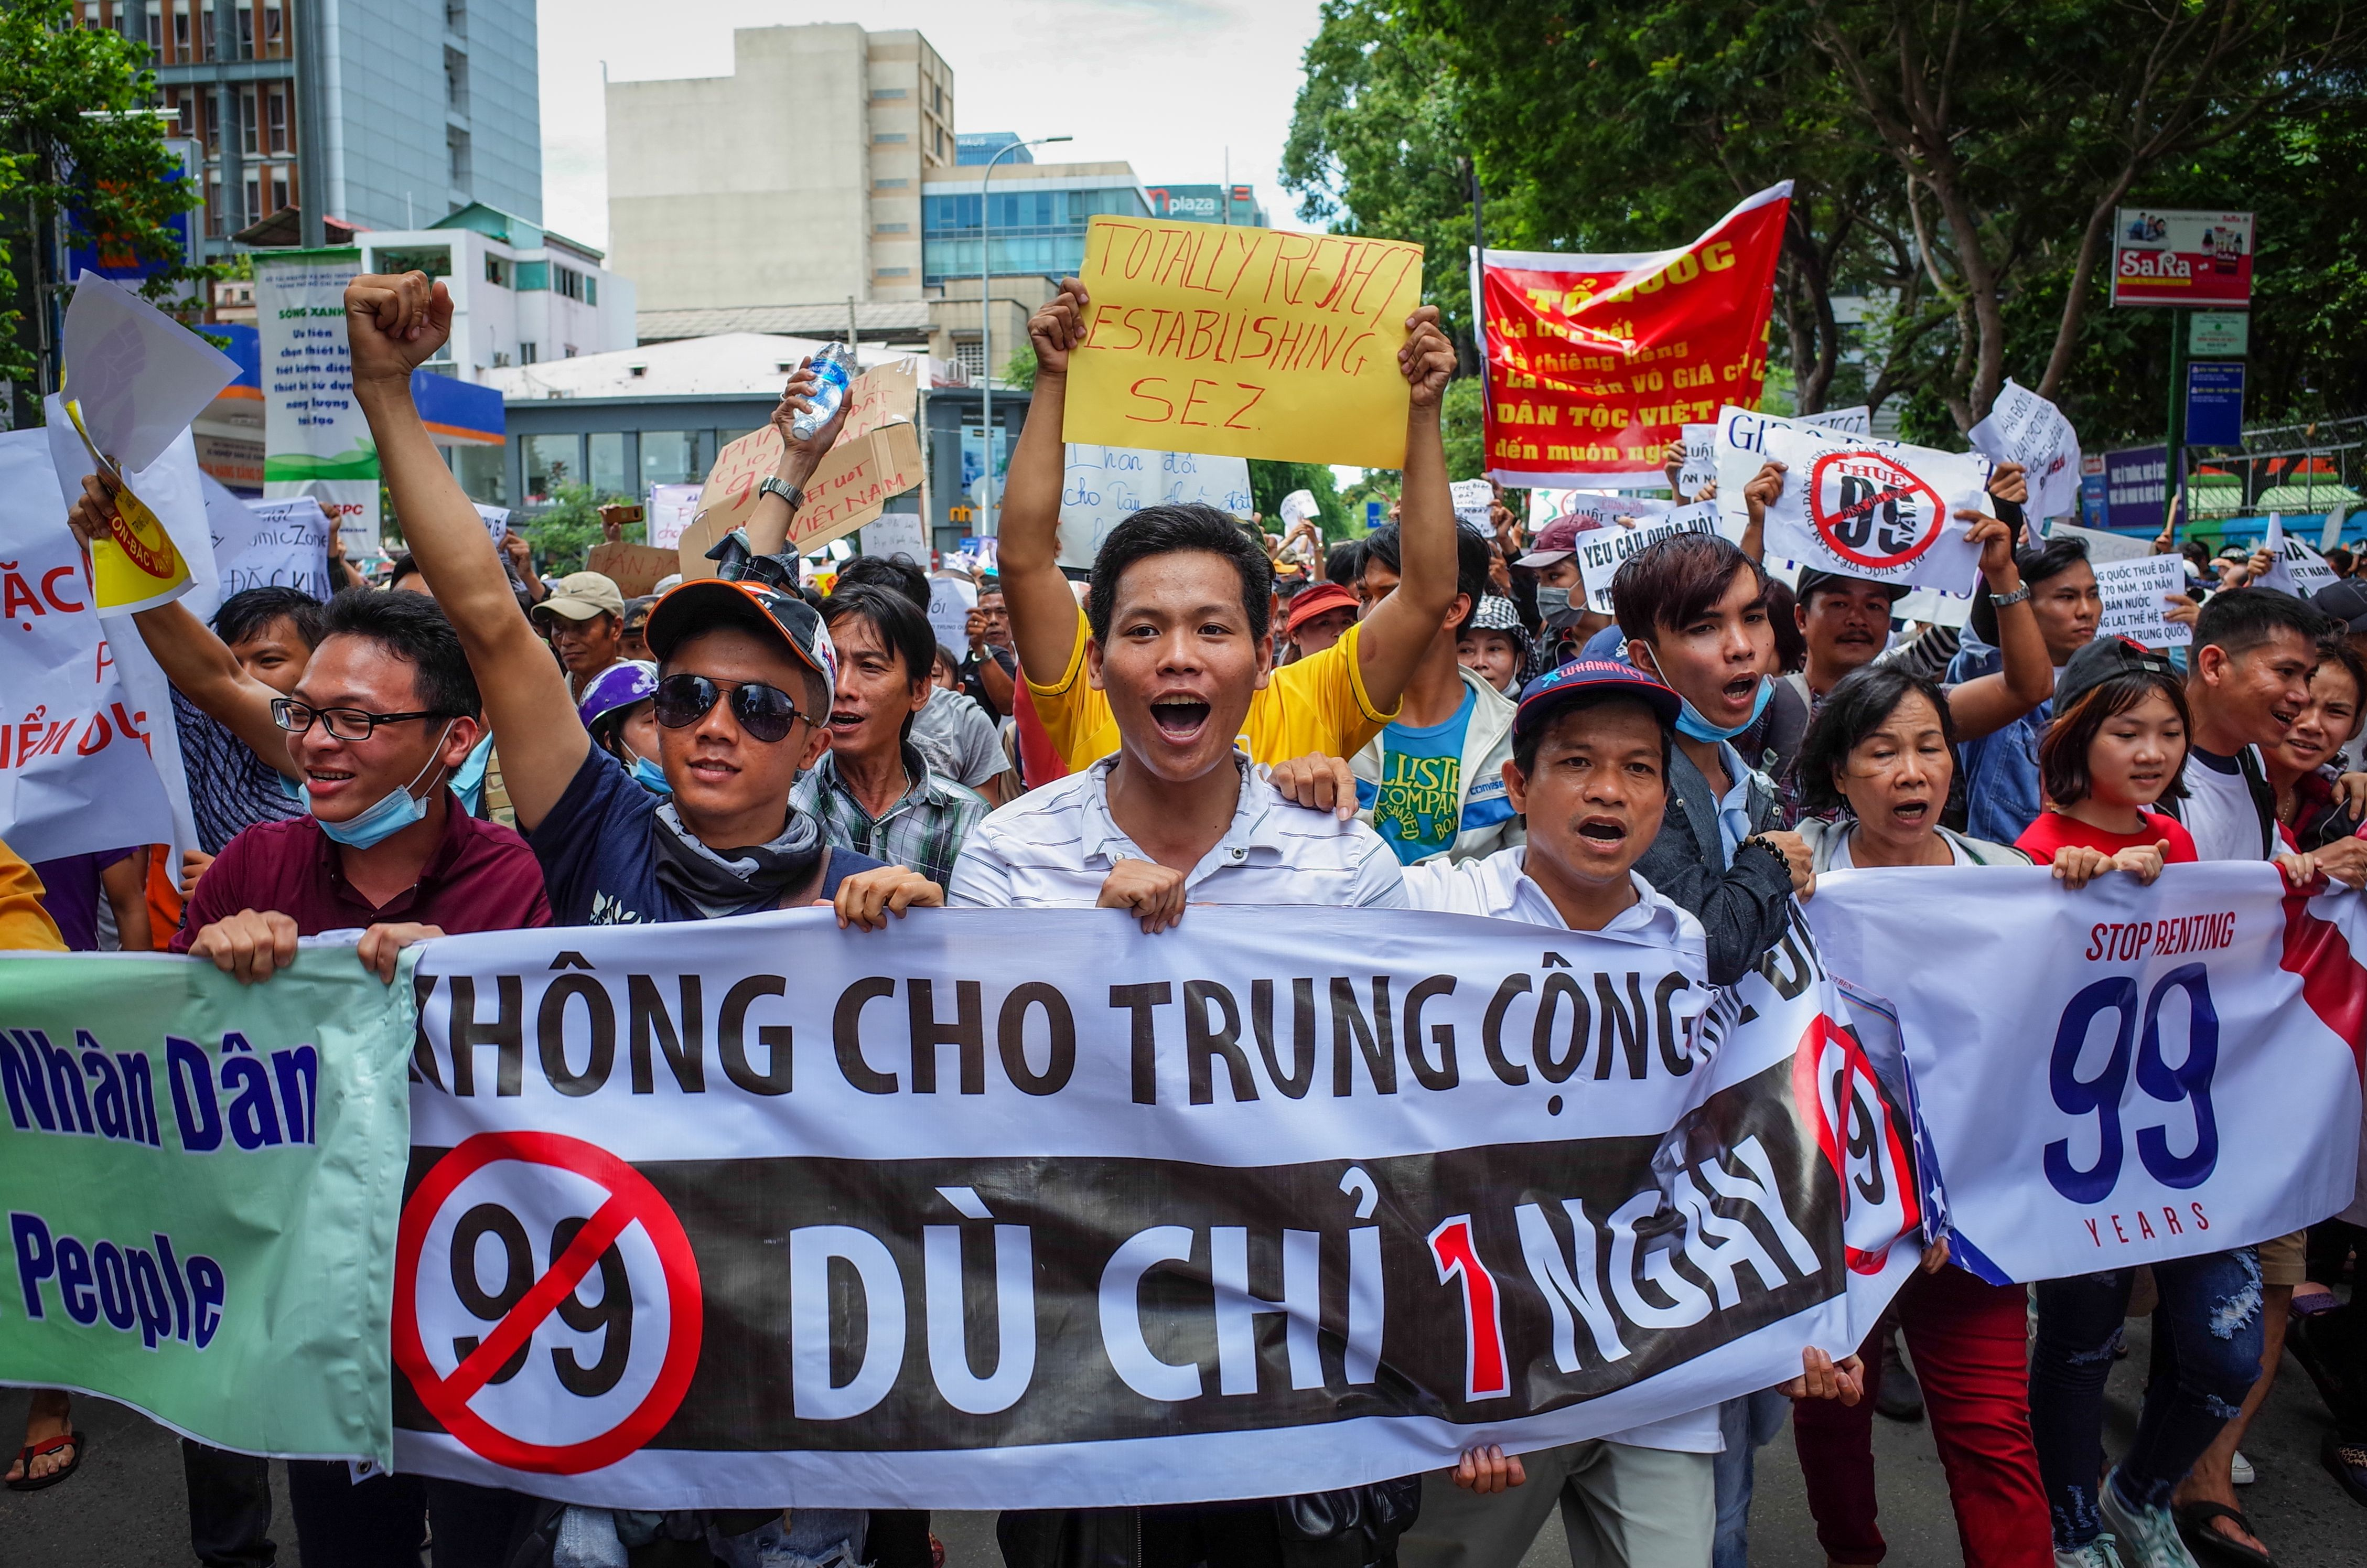 Vietnamese protesters shout slogans against a proposal to grant companies lengthy land leases during a demonstration in Ho Chi Minh City on June 10, 2018.